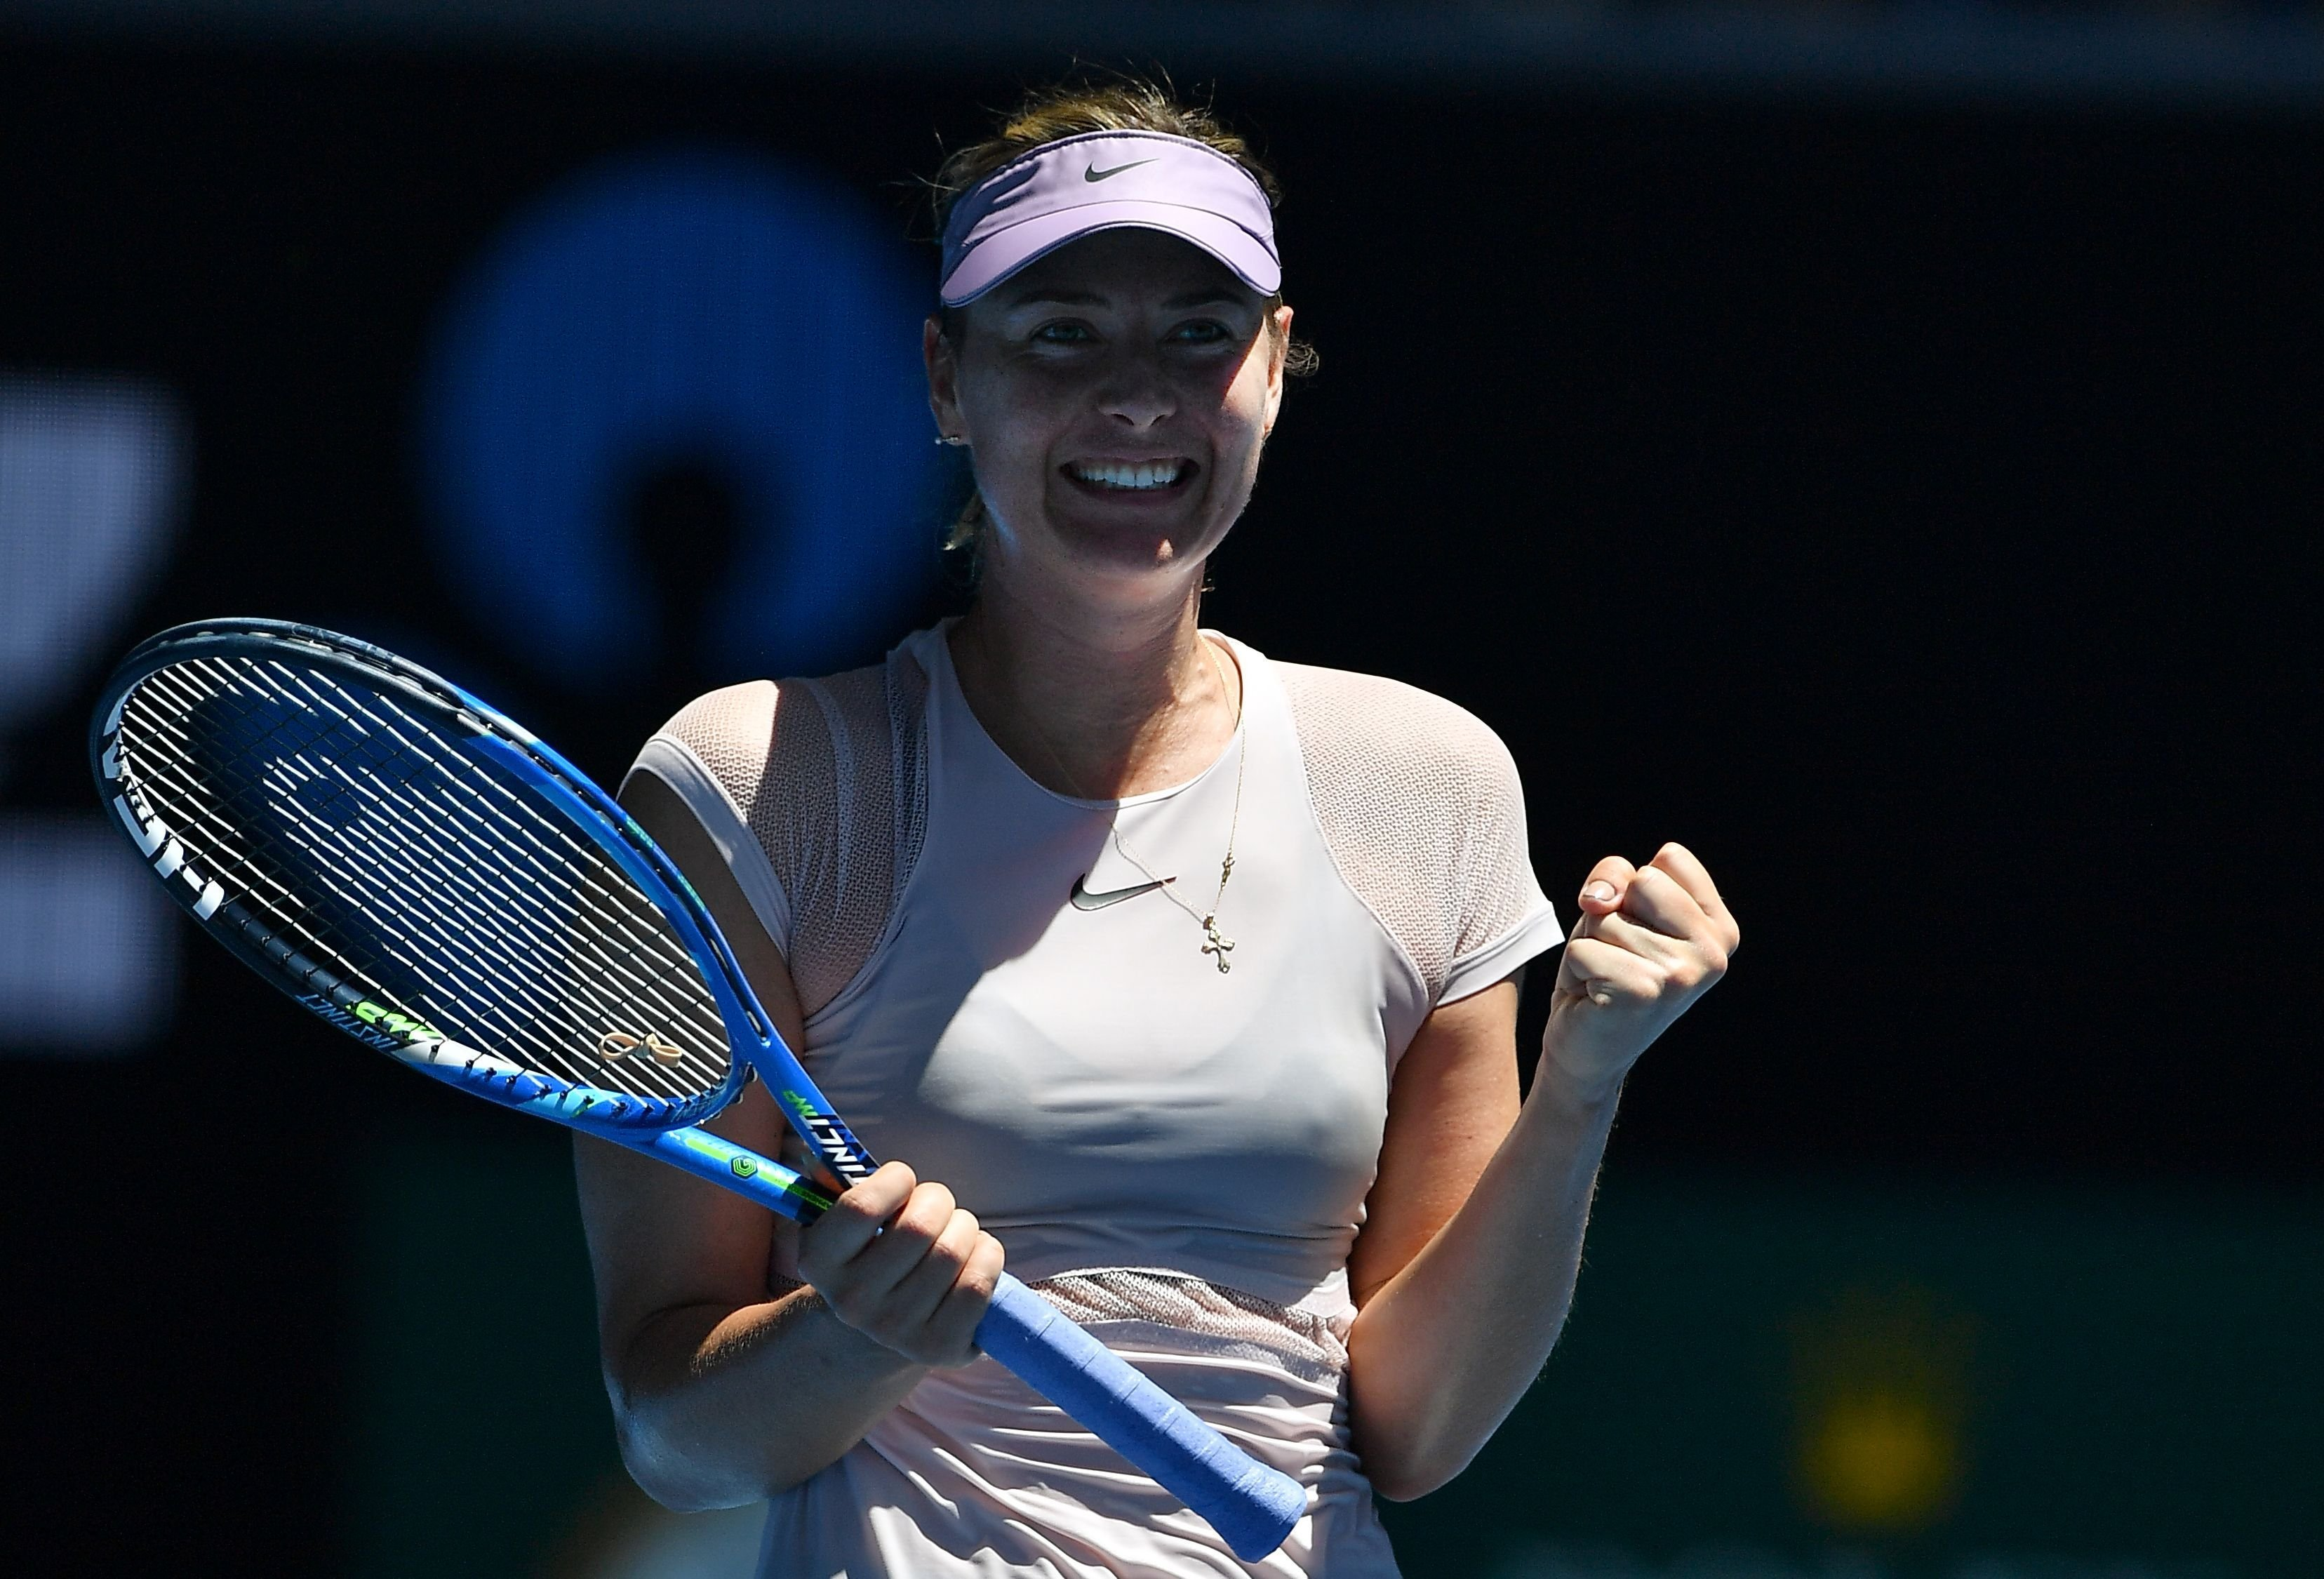 Maria Sharapova says she wants to win a Grand Slam again